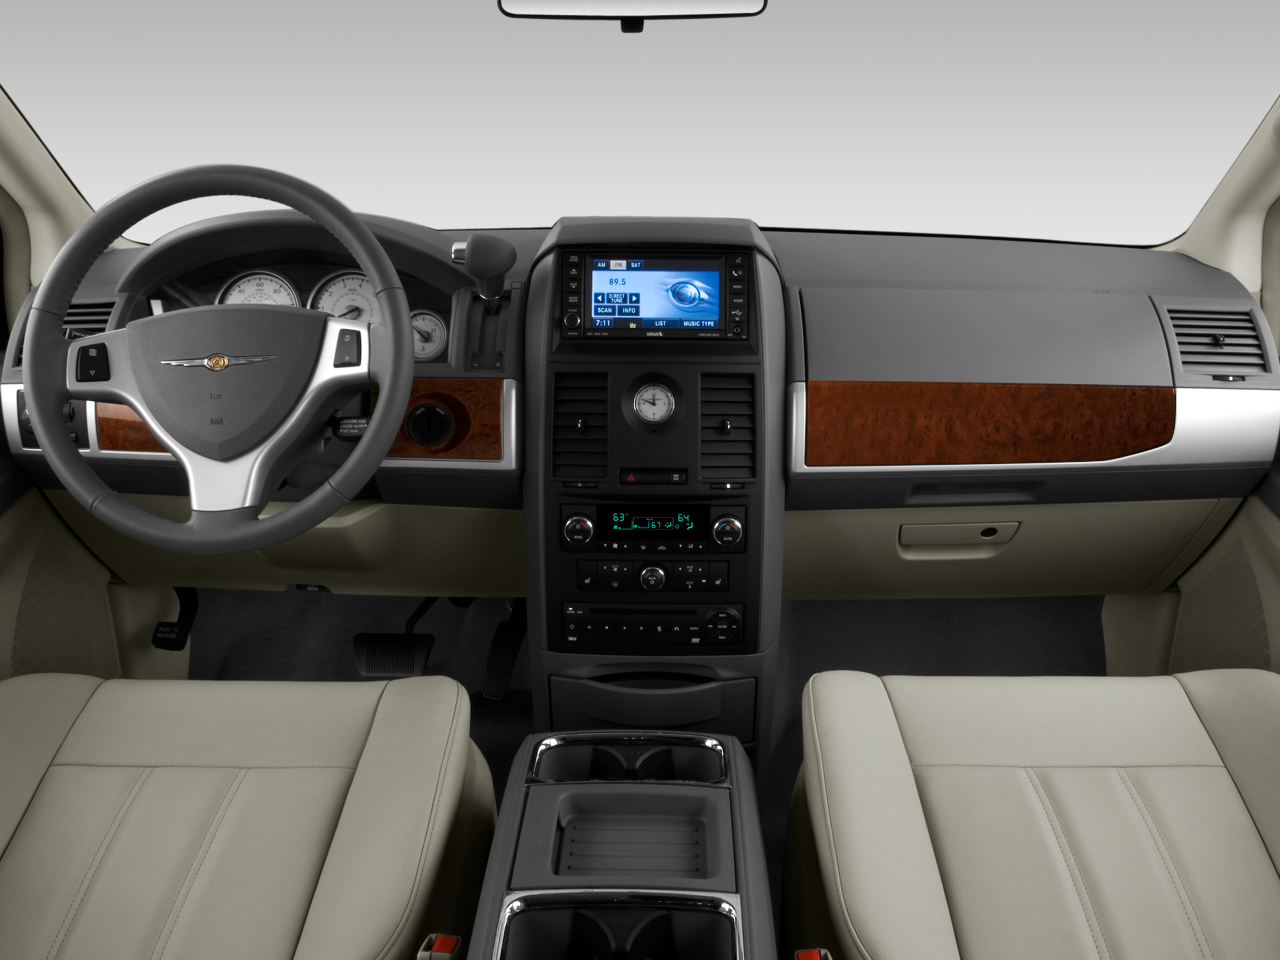 service manual removing center console in a 2009 chrysler. Black Bedroom Furniture Sets. Home Design Ideas